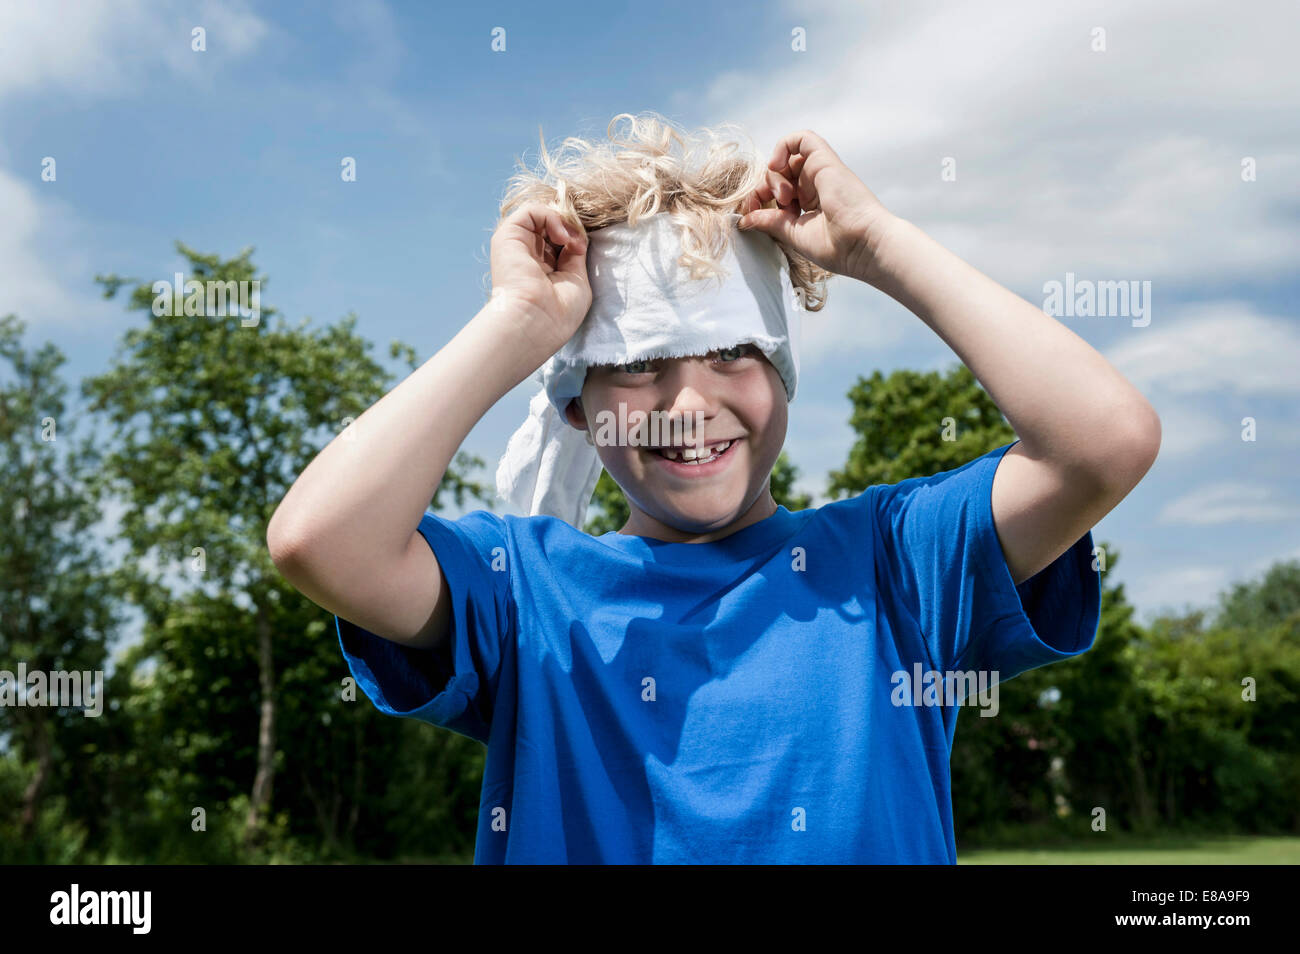 Young blond boy removing blindfold Stock Photo